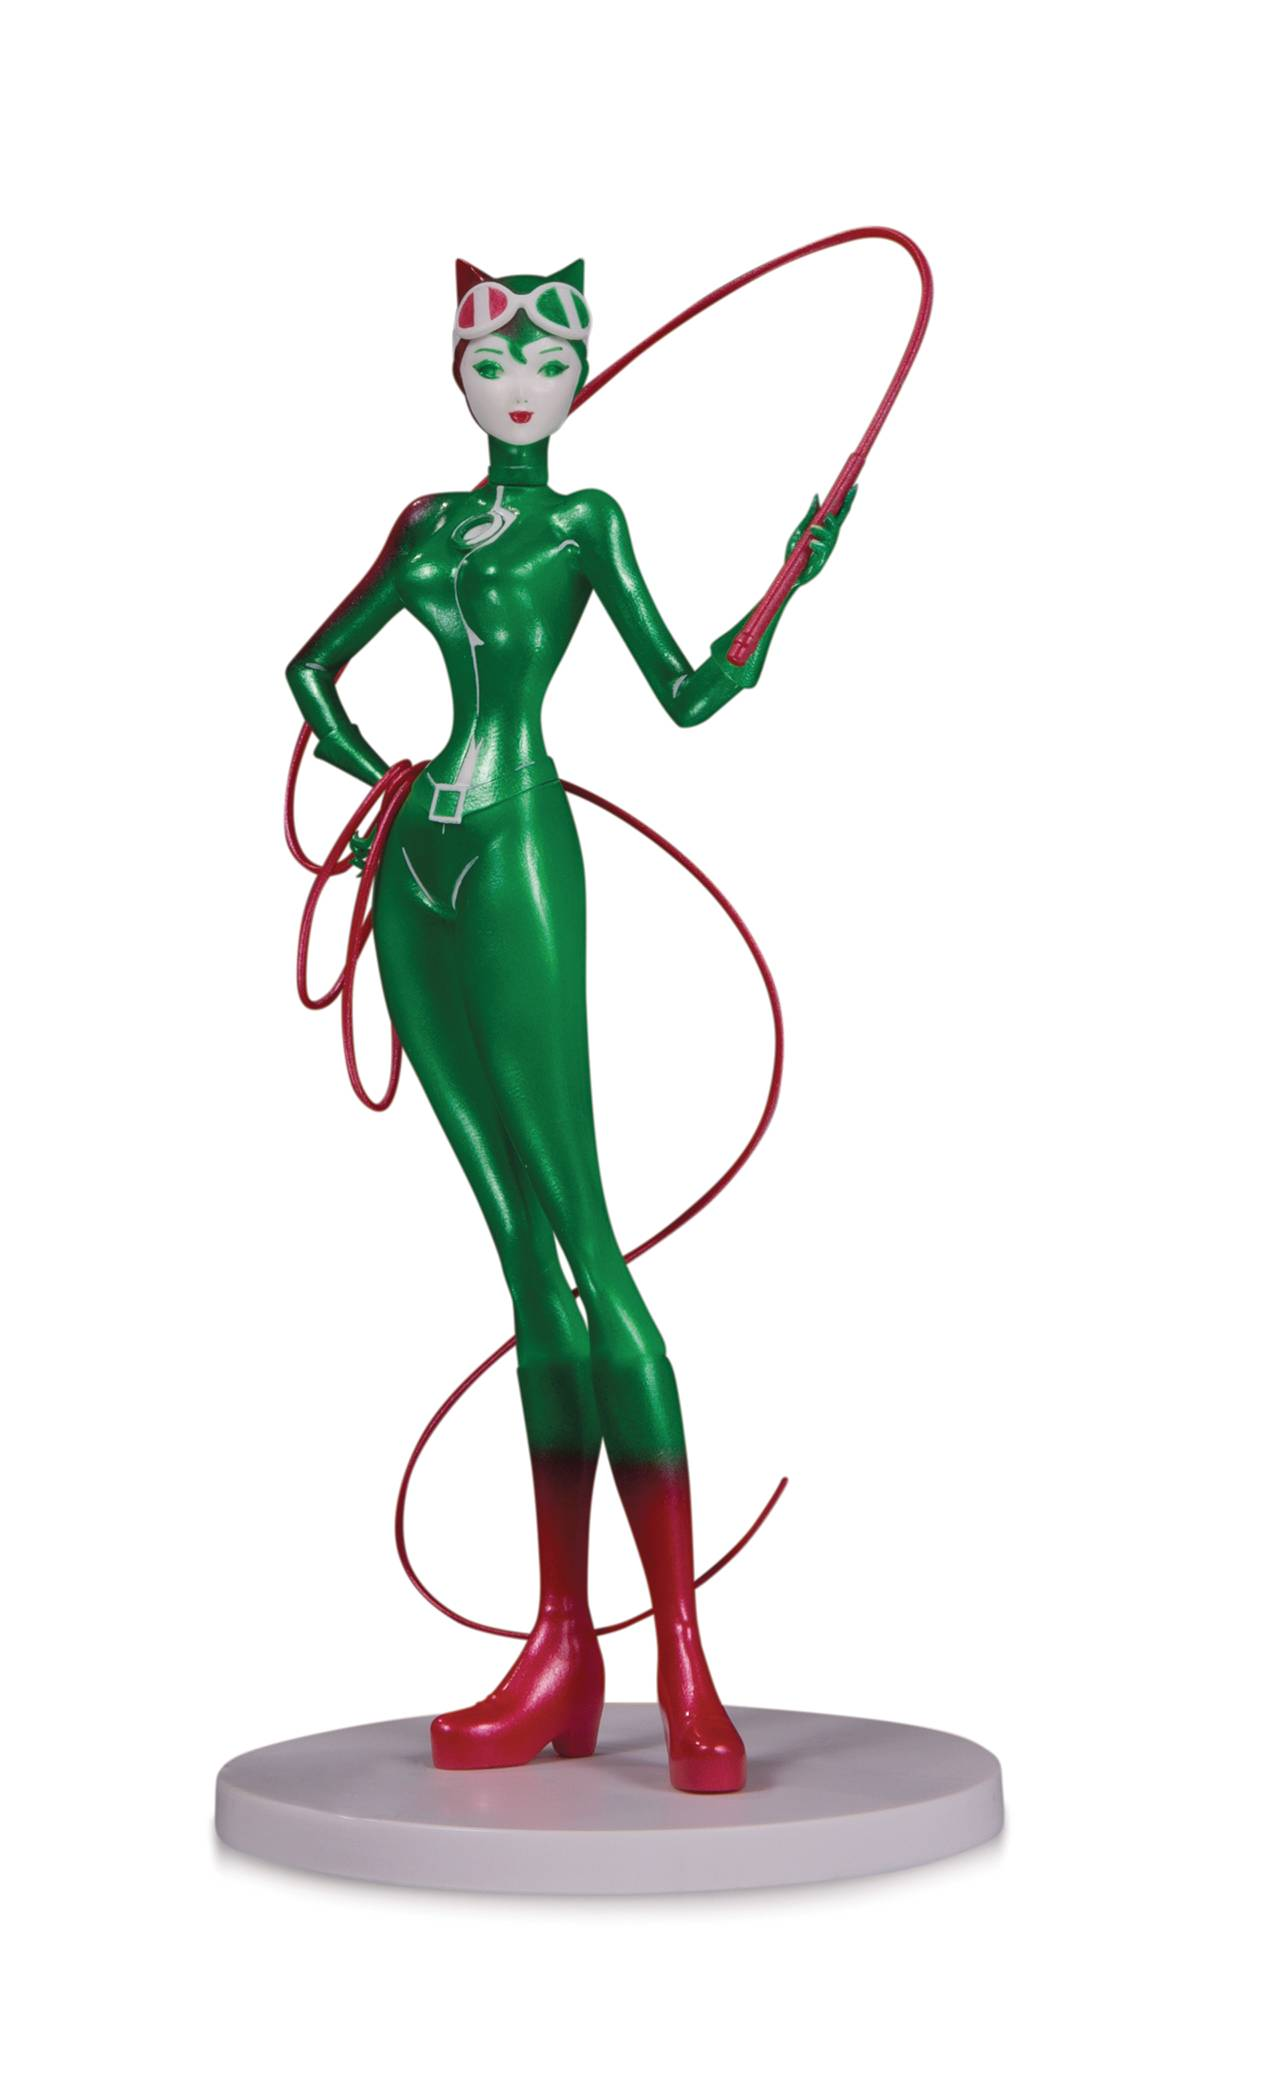 DC Comics Artists Alley Catwoman Holiday Sho Murase Statue